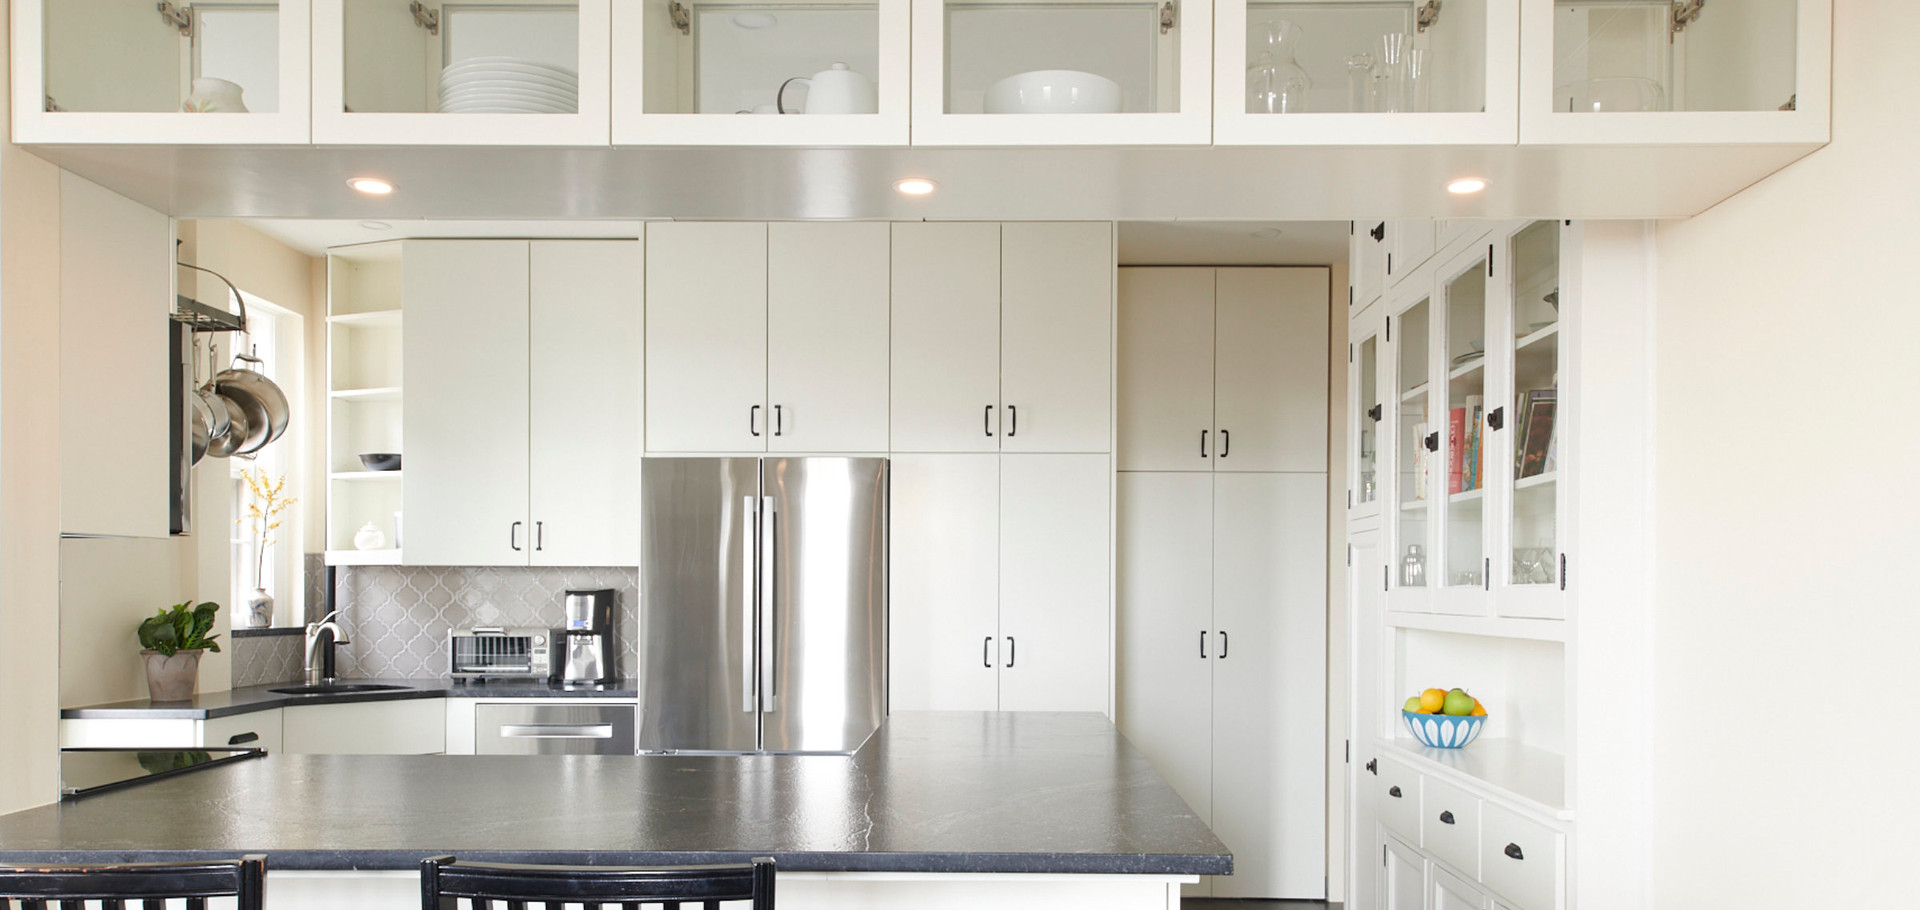 A nice big pass through cut-out of the wall between the kitchen and dining room with glass door cabinets for displayable dishware